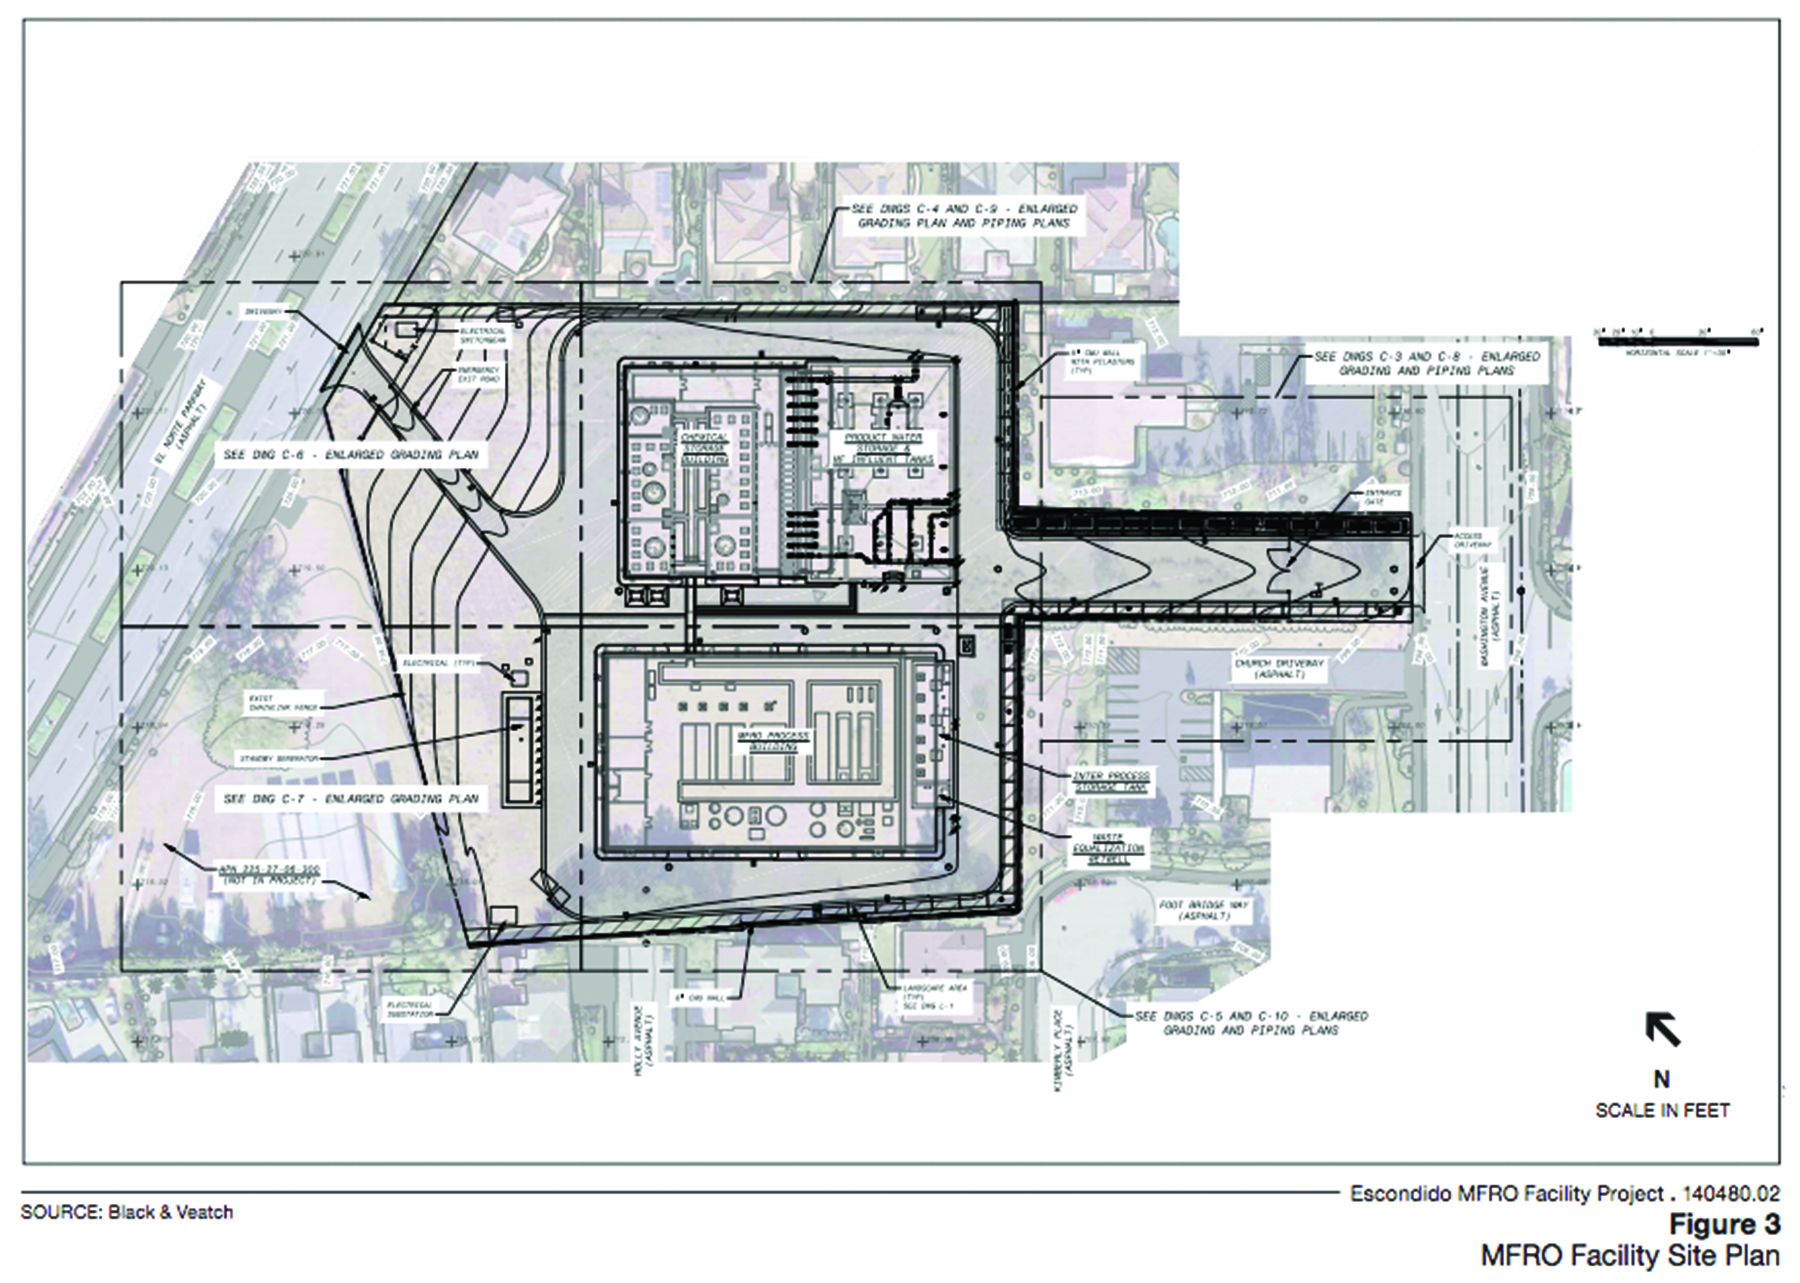 Image provided by the site plan for this specific facility project showing construction area surrounded by residential homes directly off of Washington Avenue.